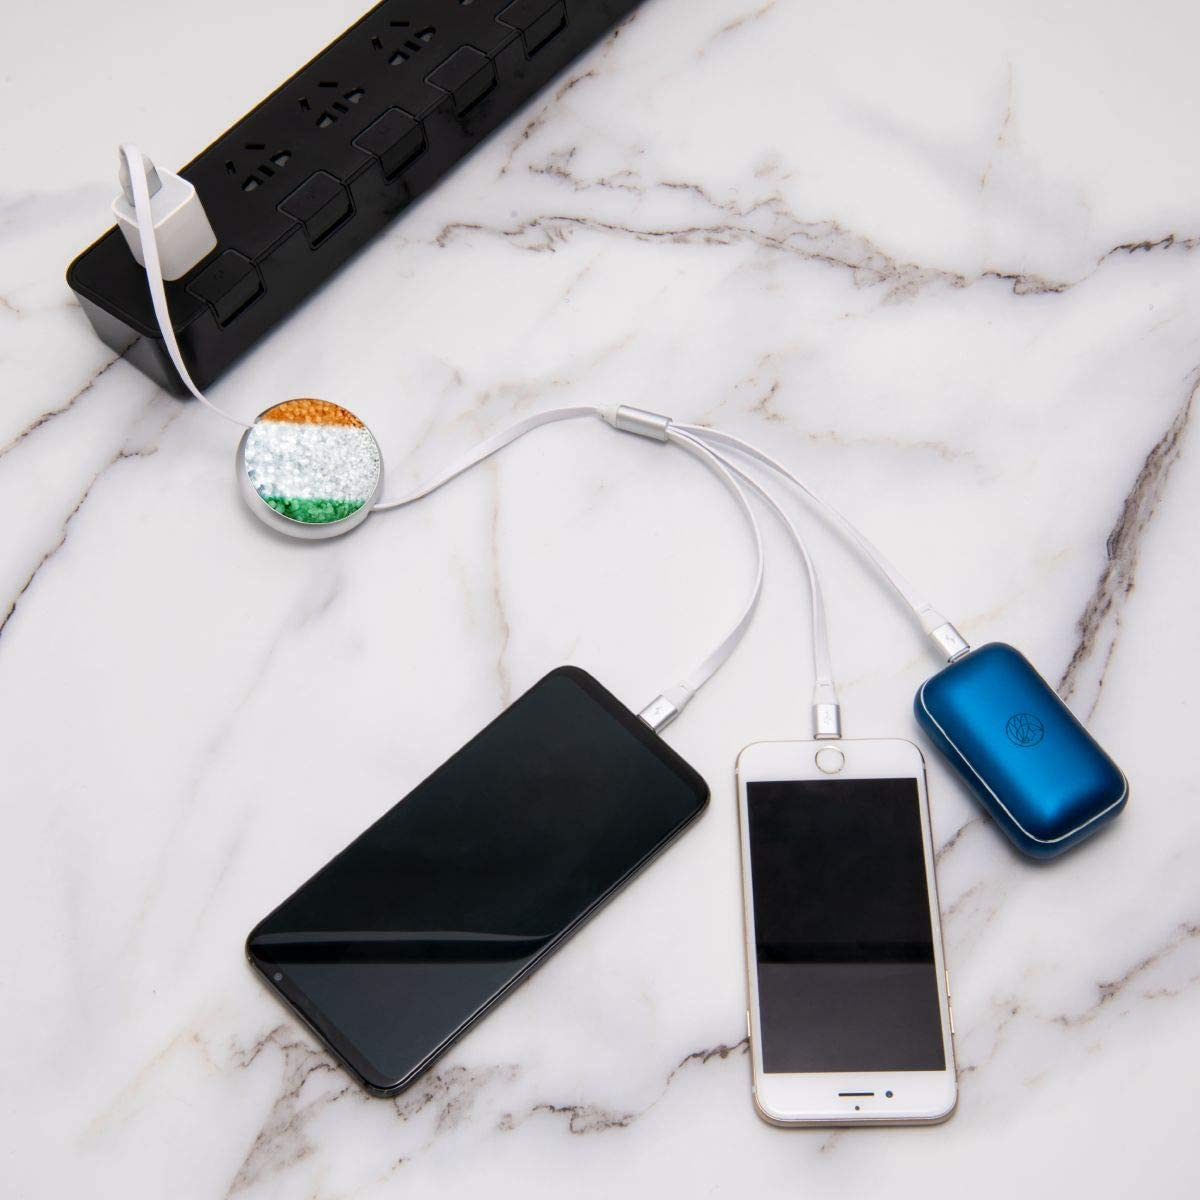 Retractable Multi USB Charging Cable Fast Charger Cord 3 in 1 Irish Flag Flashing with Type C Micro USB Port Connectors